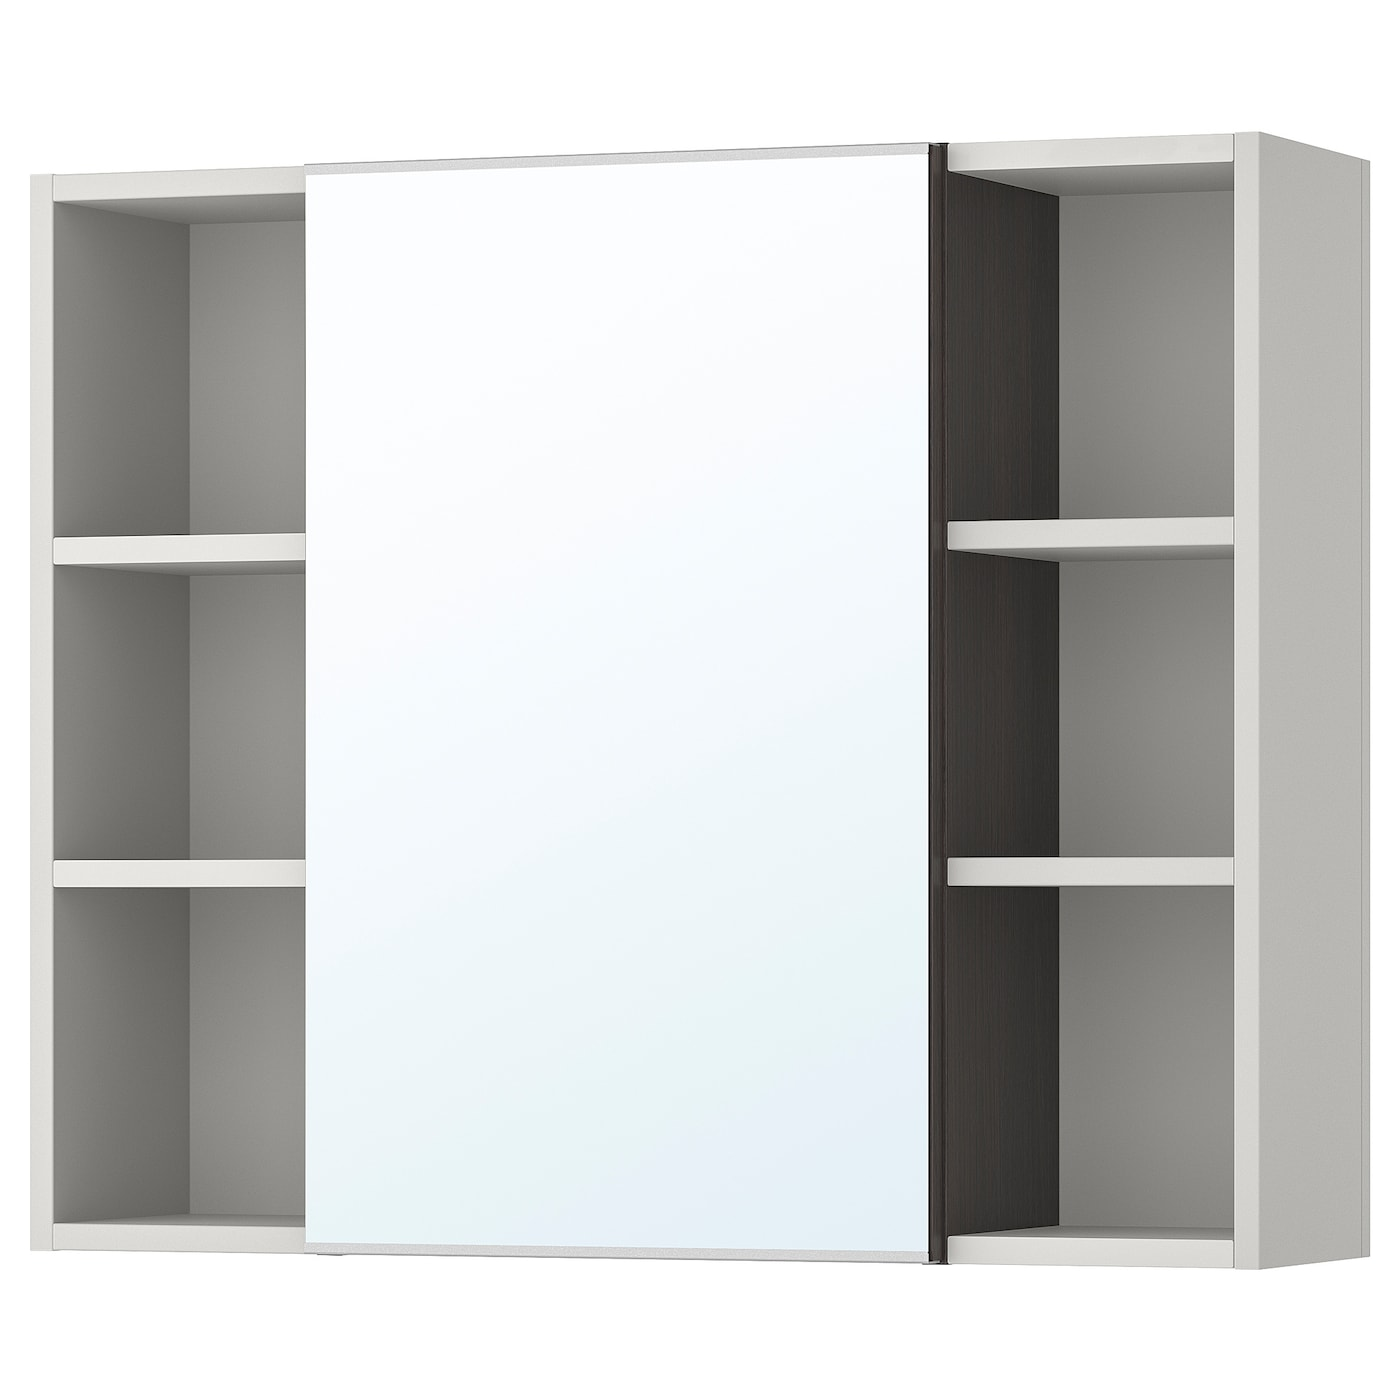 Ikea LillÅngen Mirror Cabinet 1 Door 2 End Units